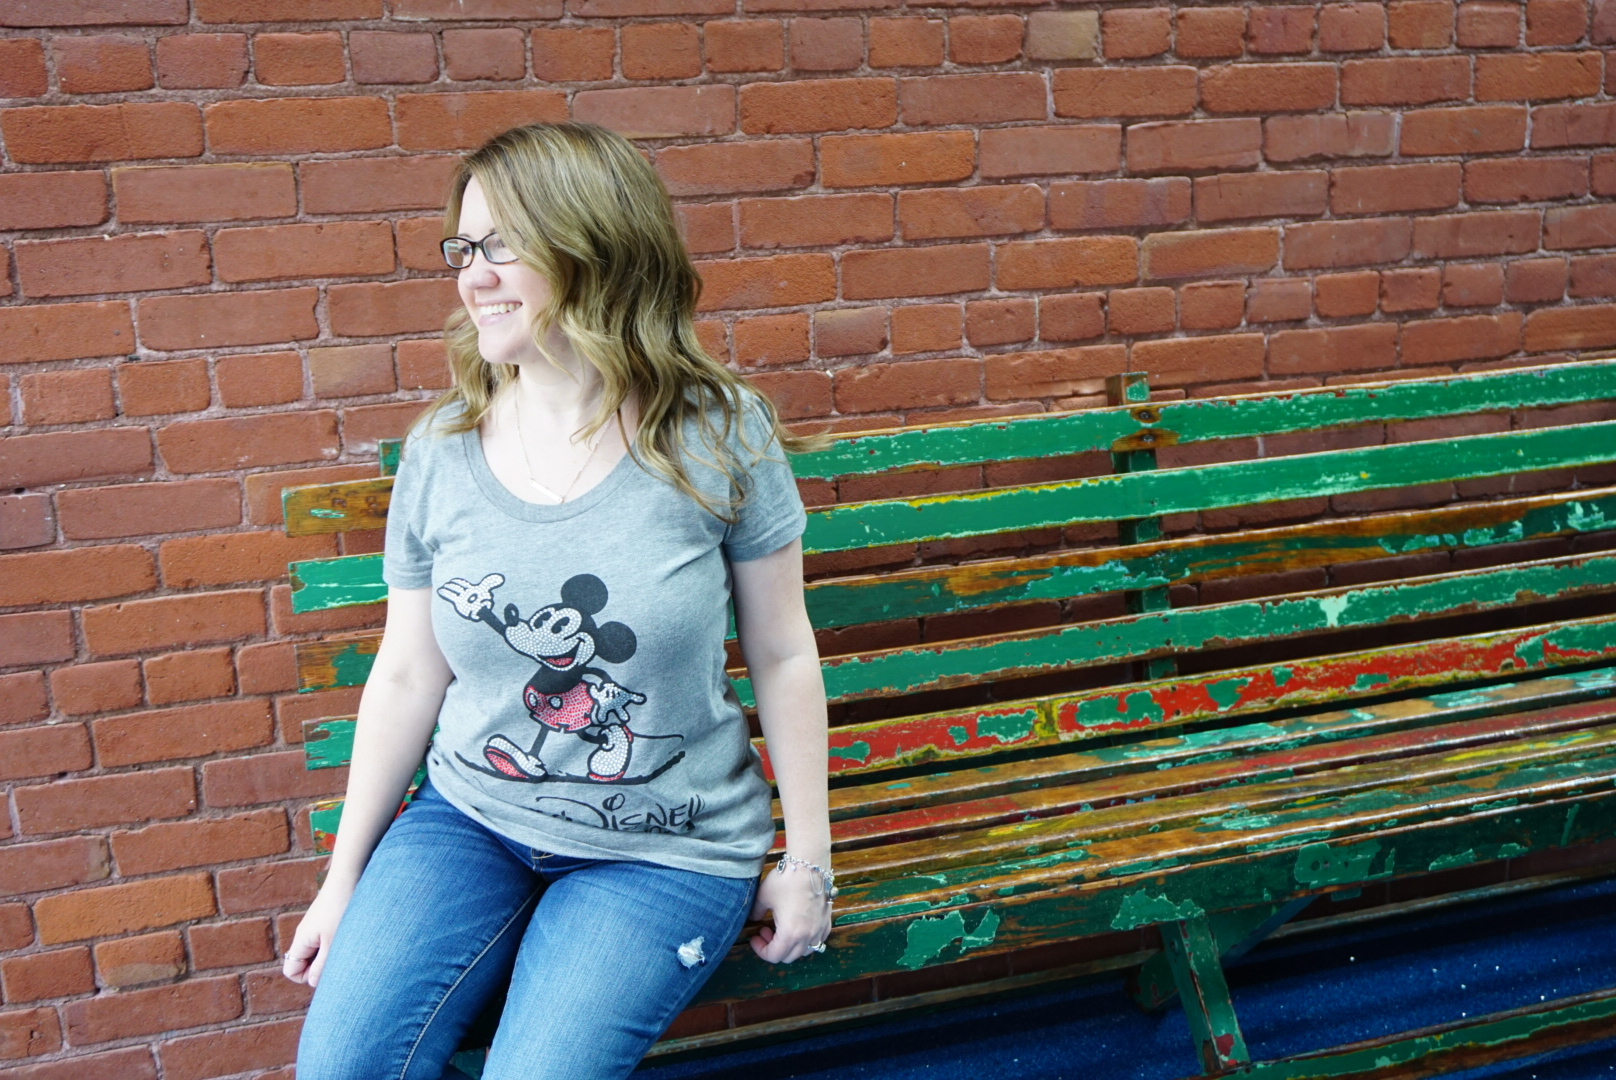 sitting on Walt Disney's bench from Griffith Park in museum